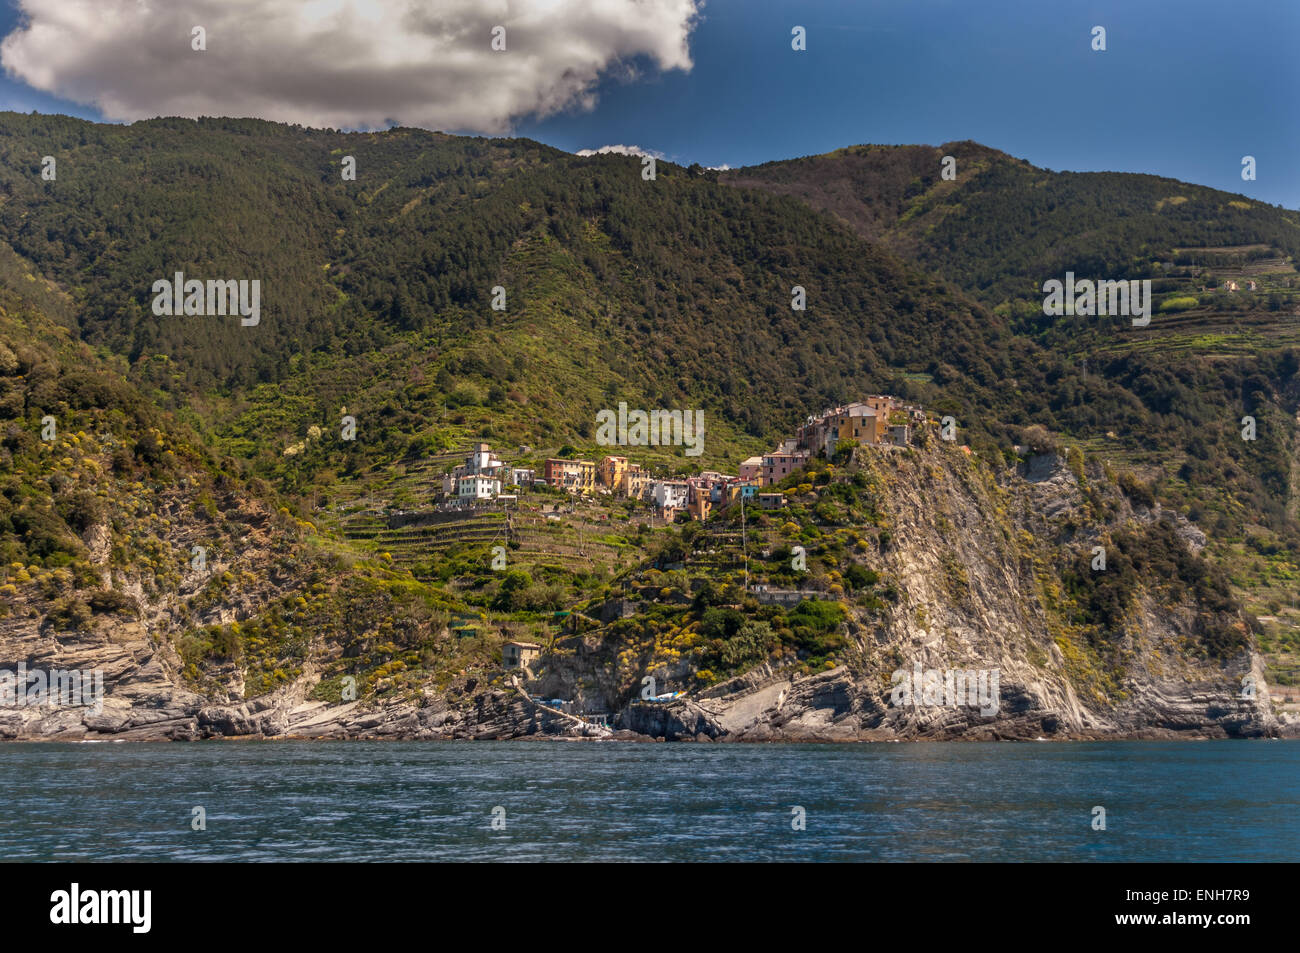 View of Cinque Terre coastline and Italian Riviera from Gulf of Poets Maritime Tourist Consortium Boat - Stock Image